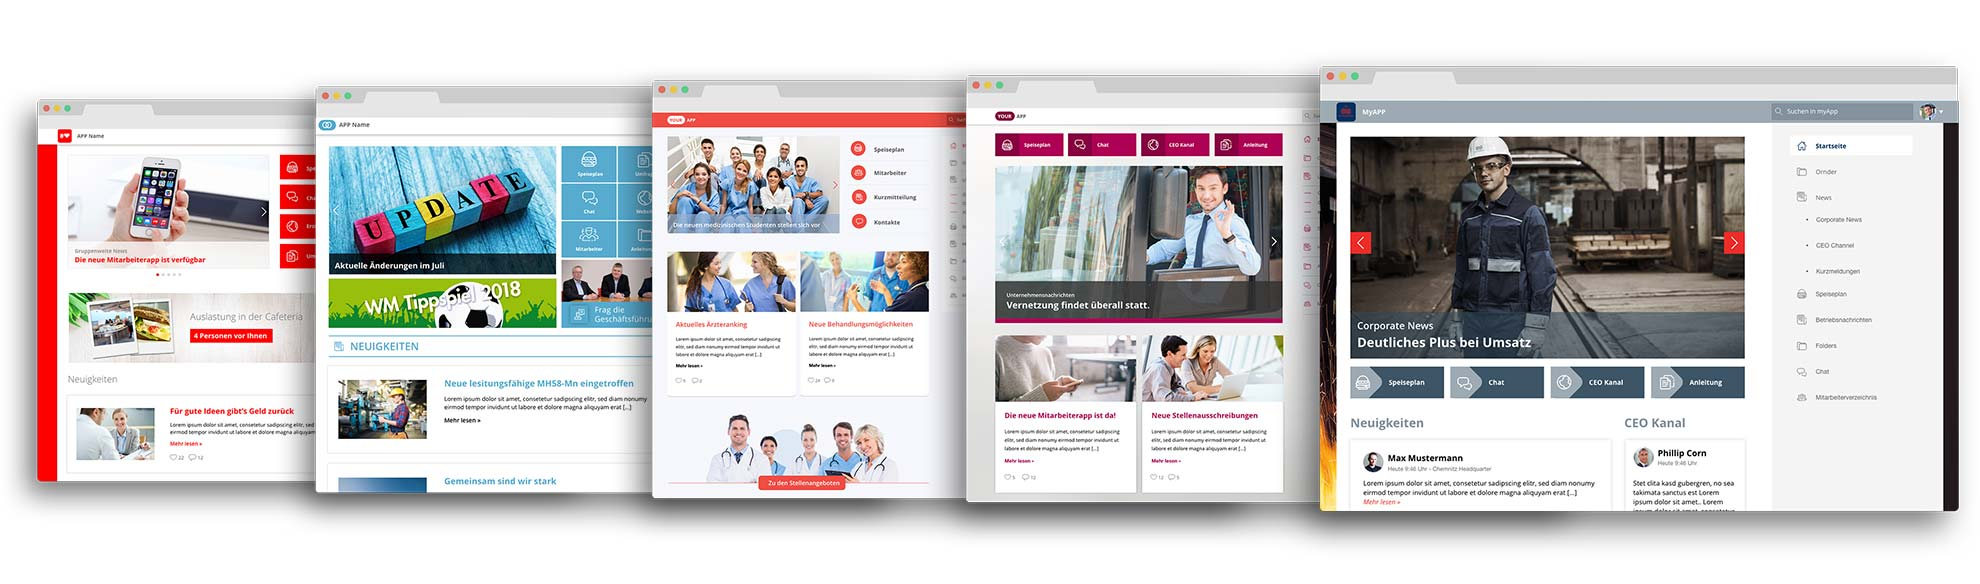 Staffbase Intranet Desktop Custom Designs